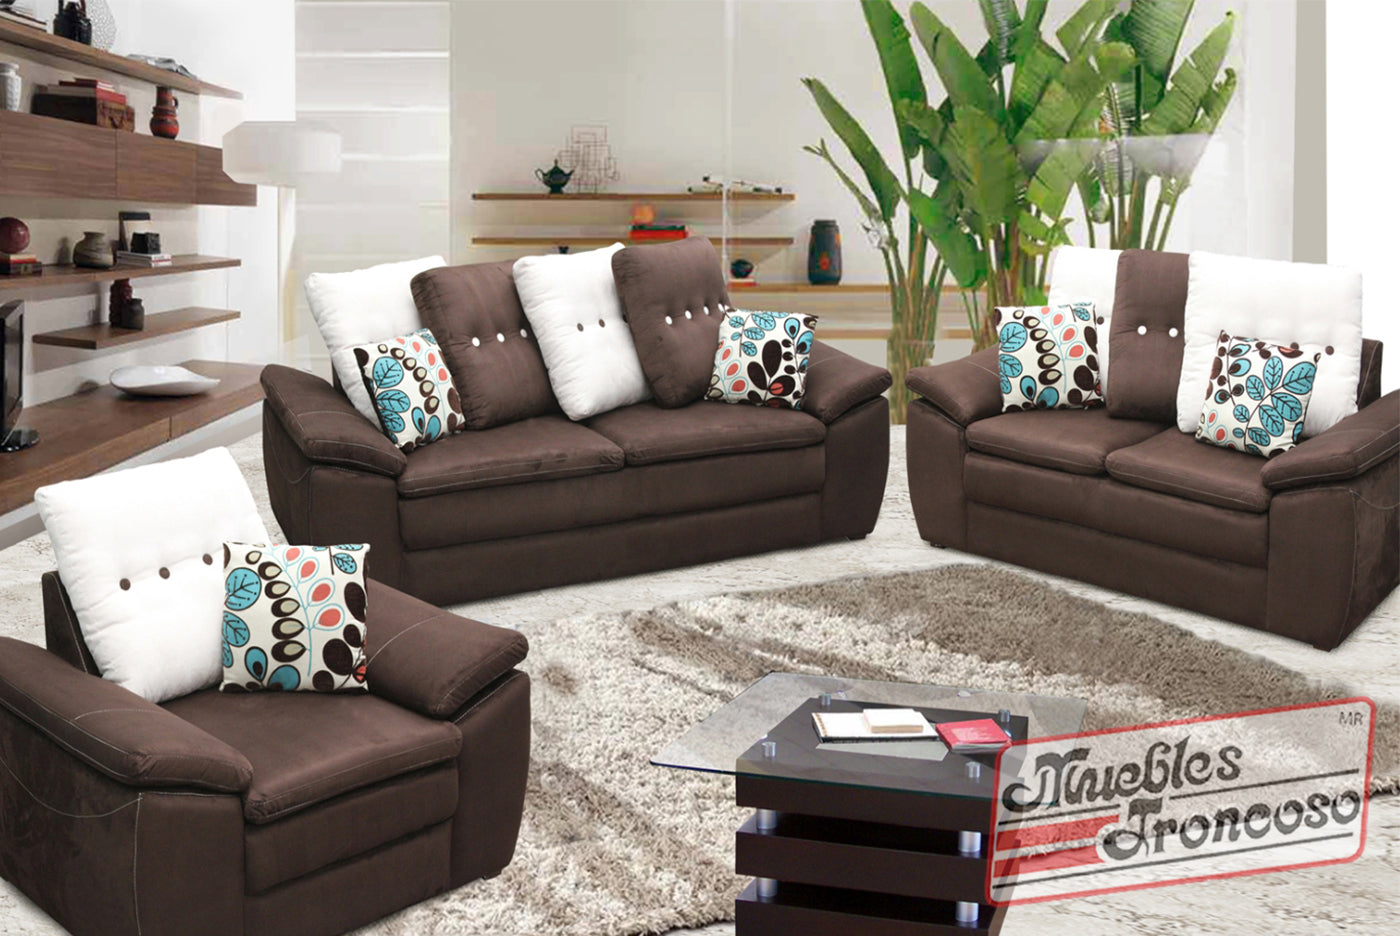 Sala Relax Chocolate Muebles Troncoso